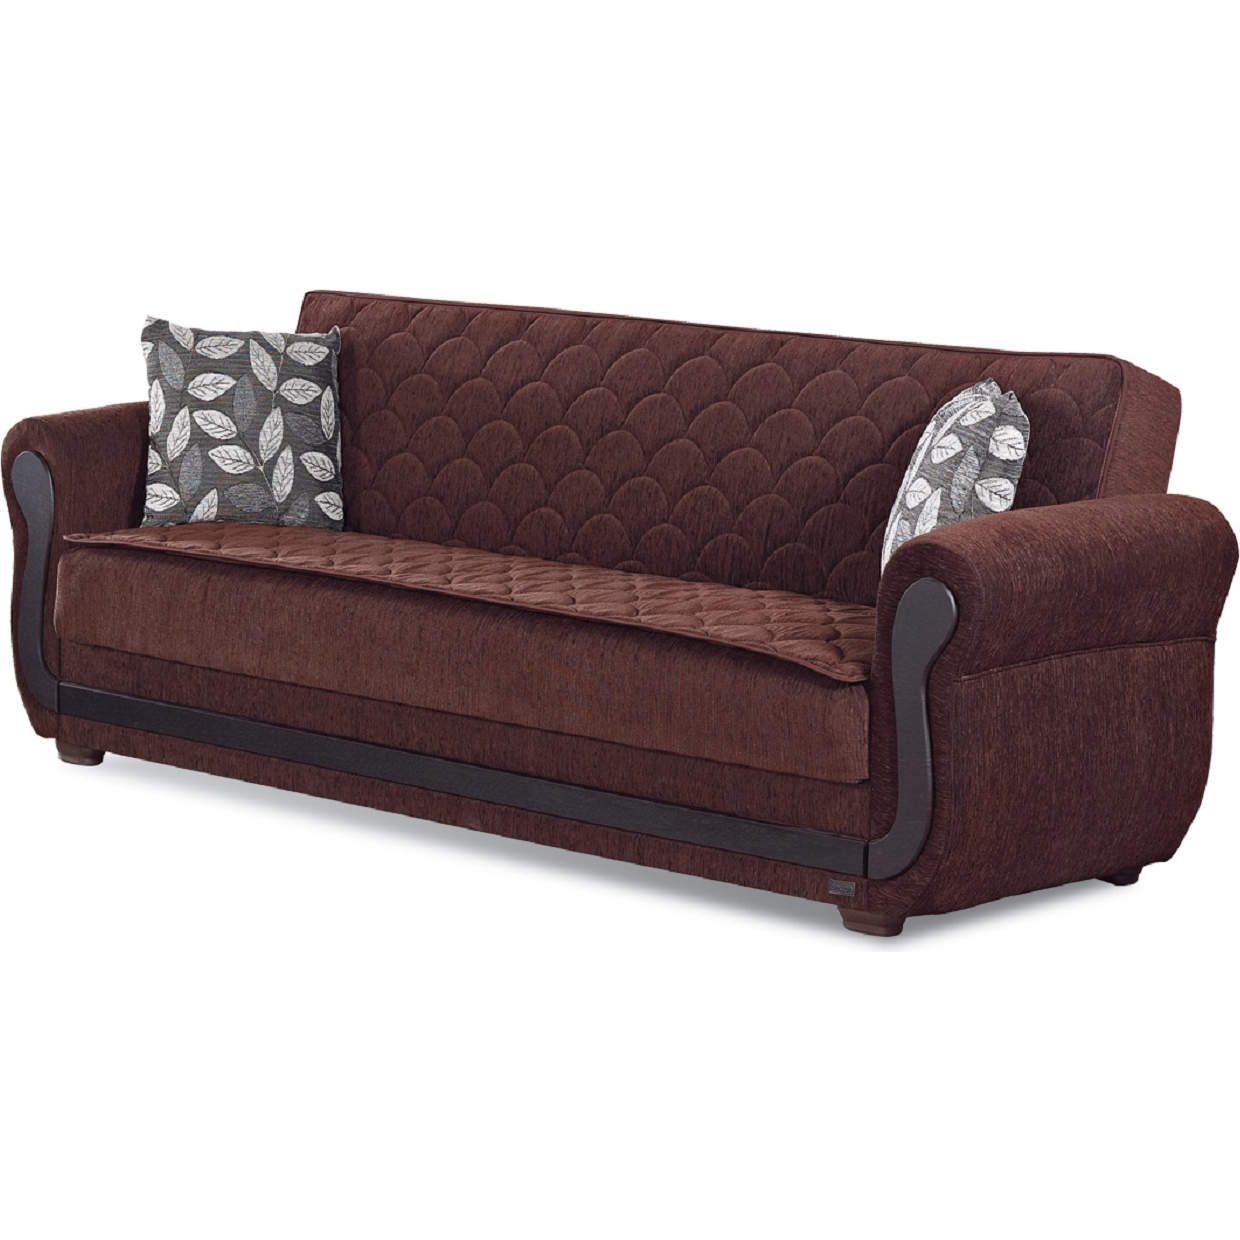 Outstanding Sunrise Sleeper Sofa In Quilted Dark Brown Chenille By Empire Furniture Unemploymentrelief Wooden Chair Designs For Living Room Unemploymentrelieforg